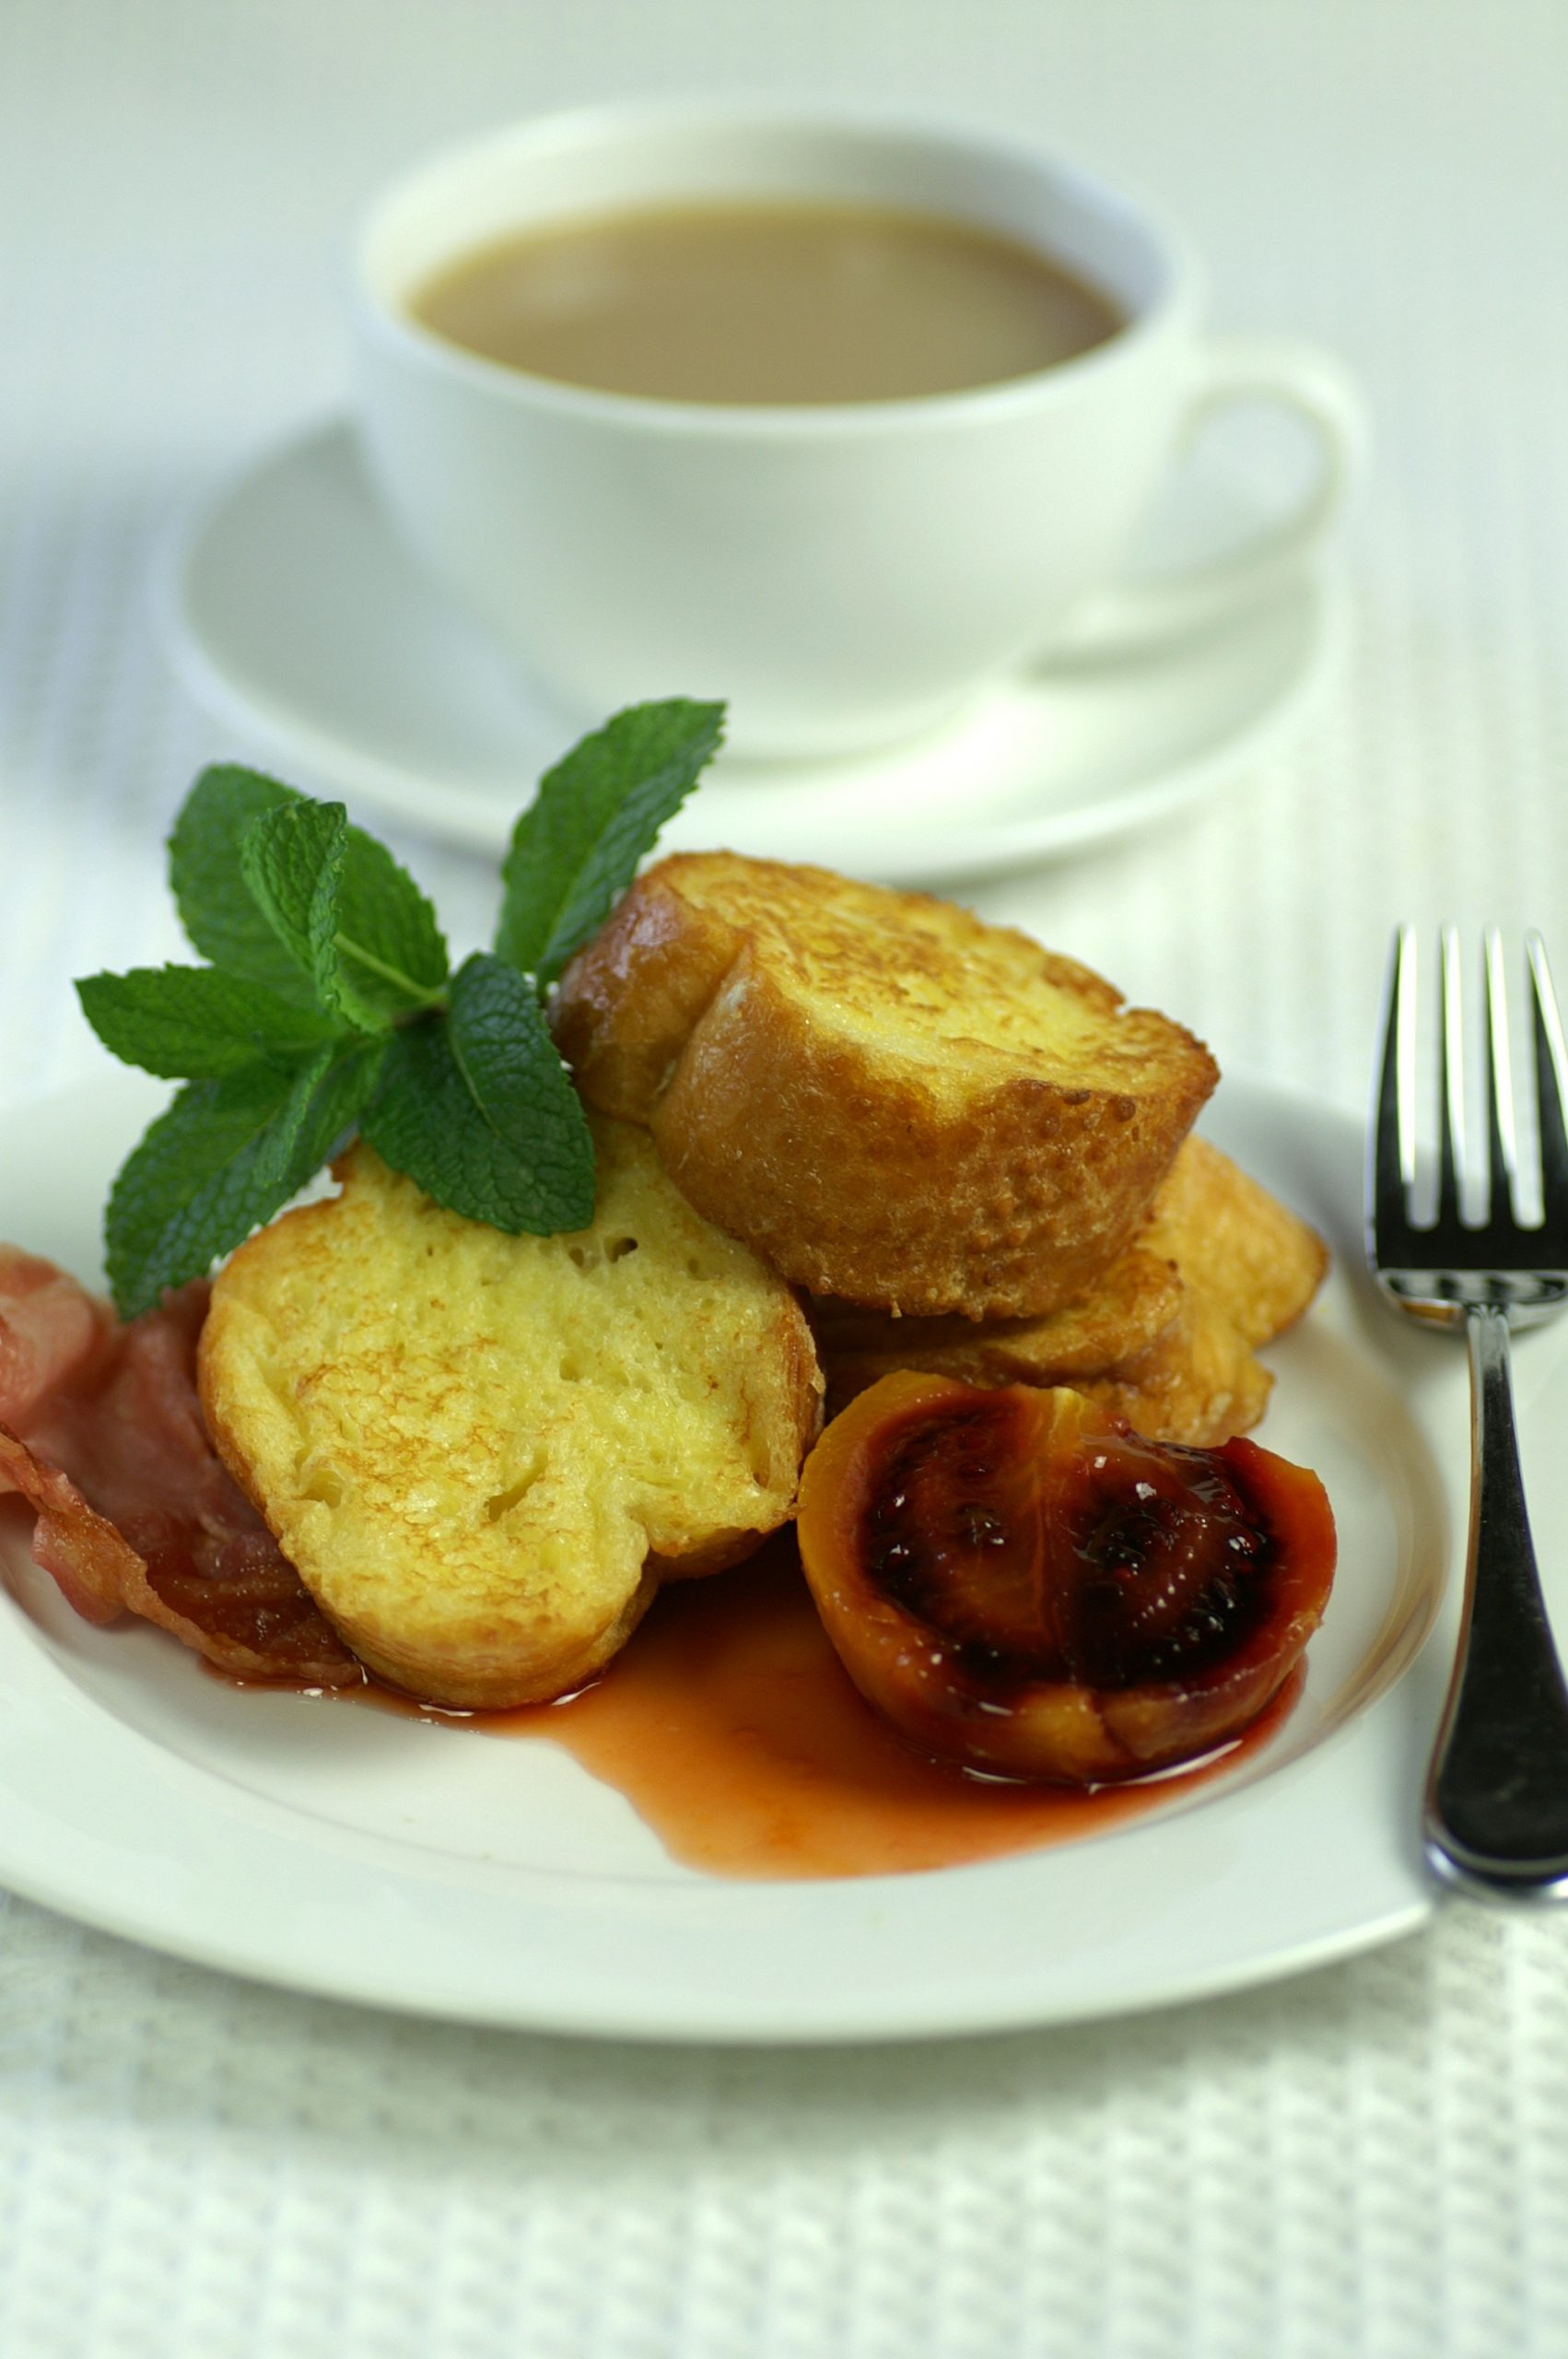 Fancy French toast image